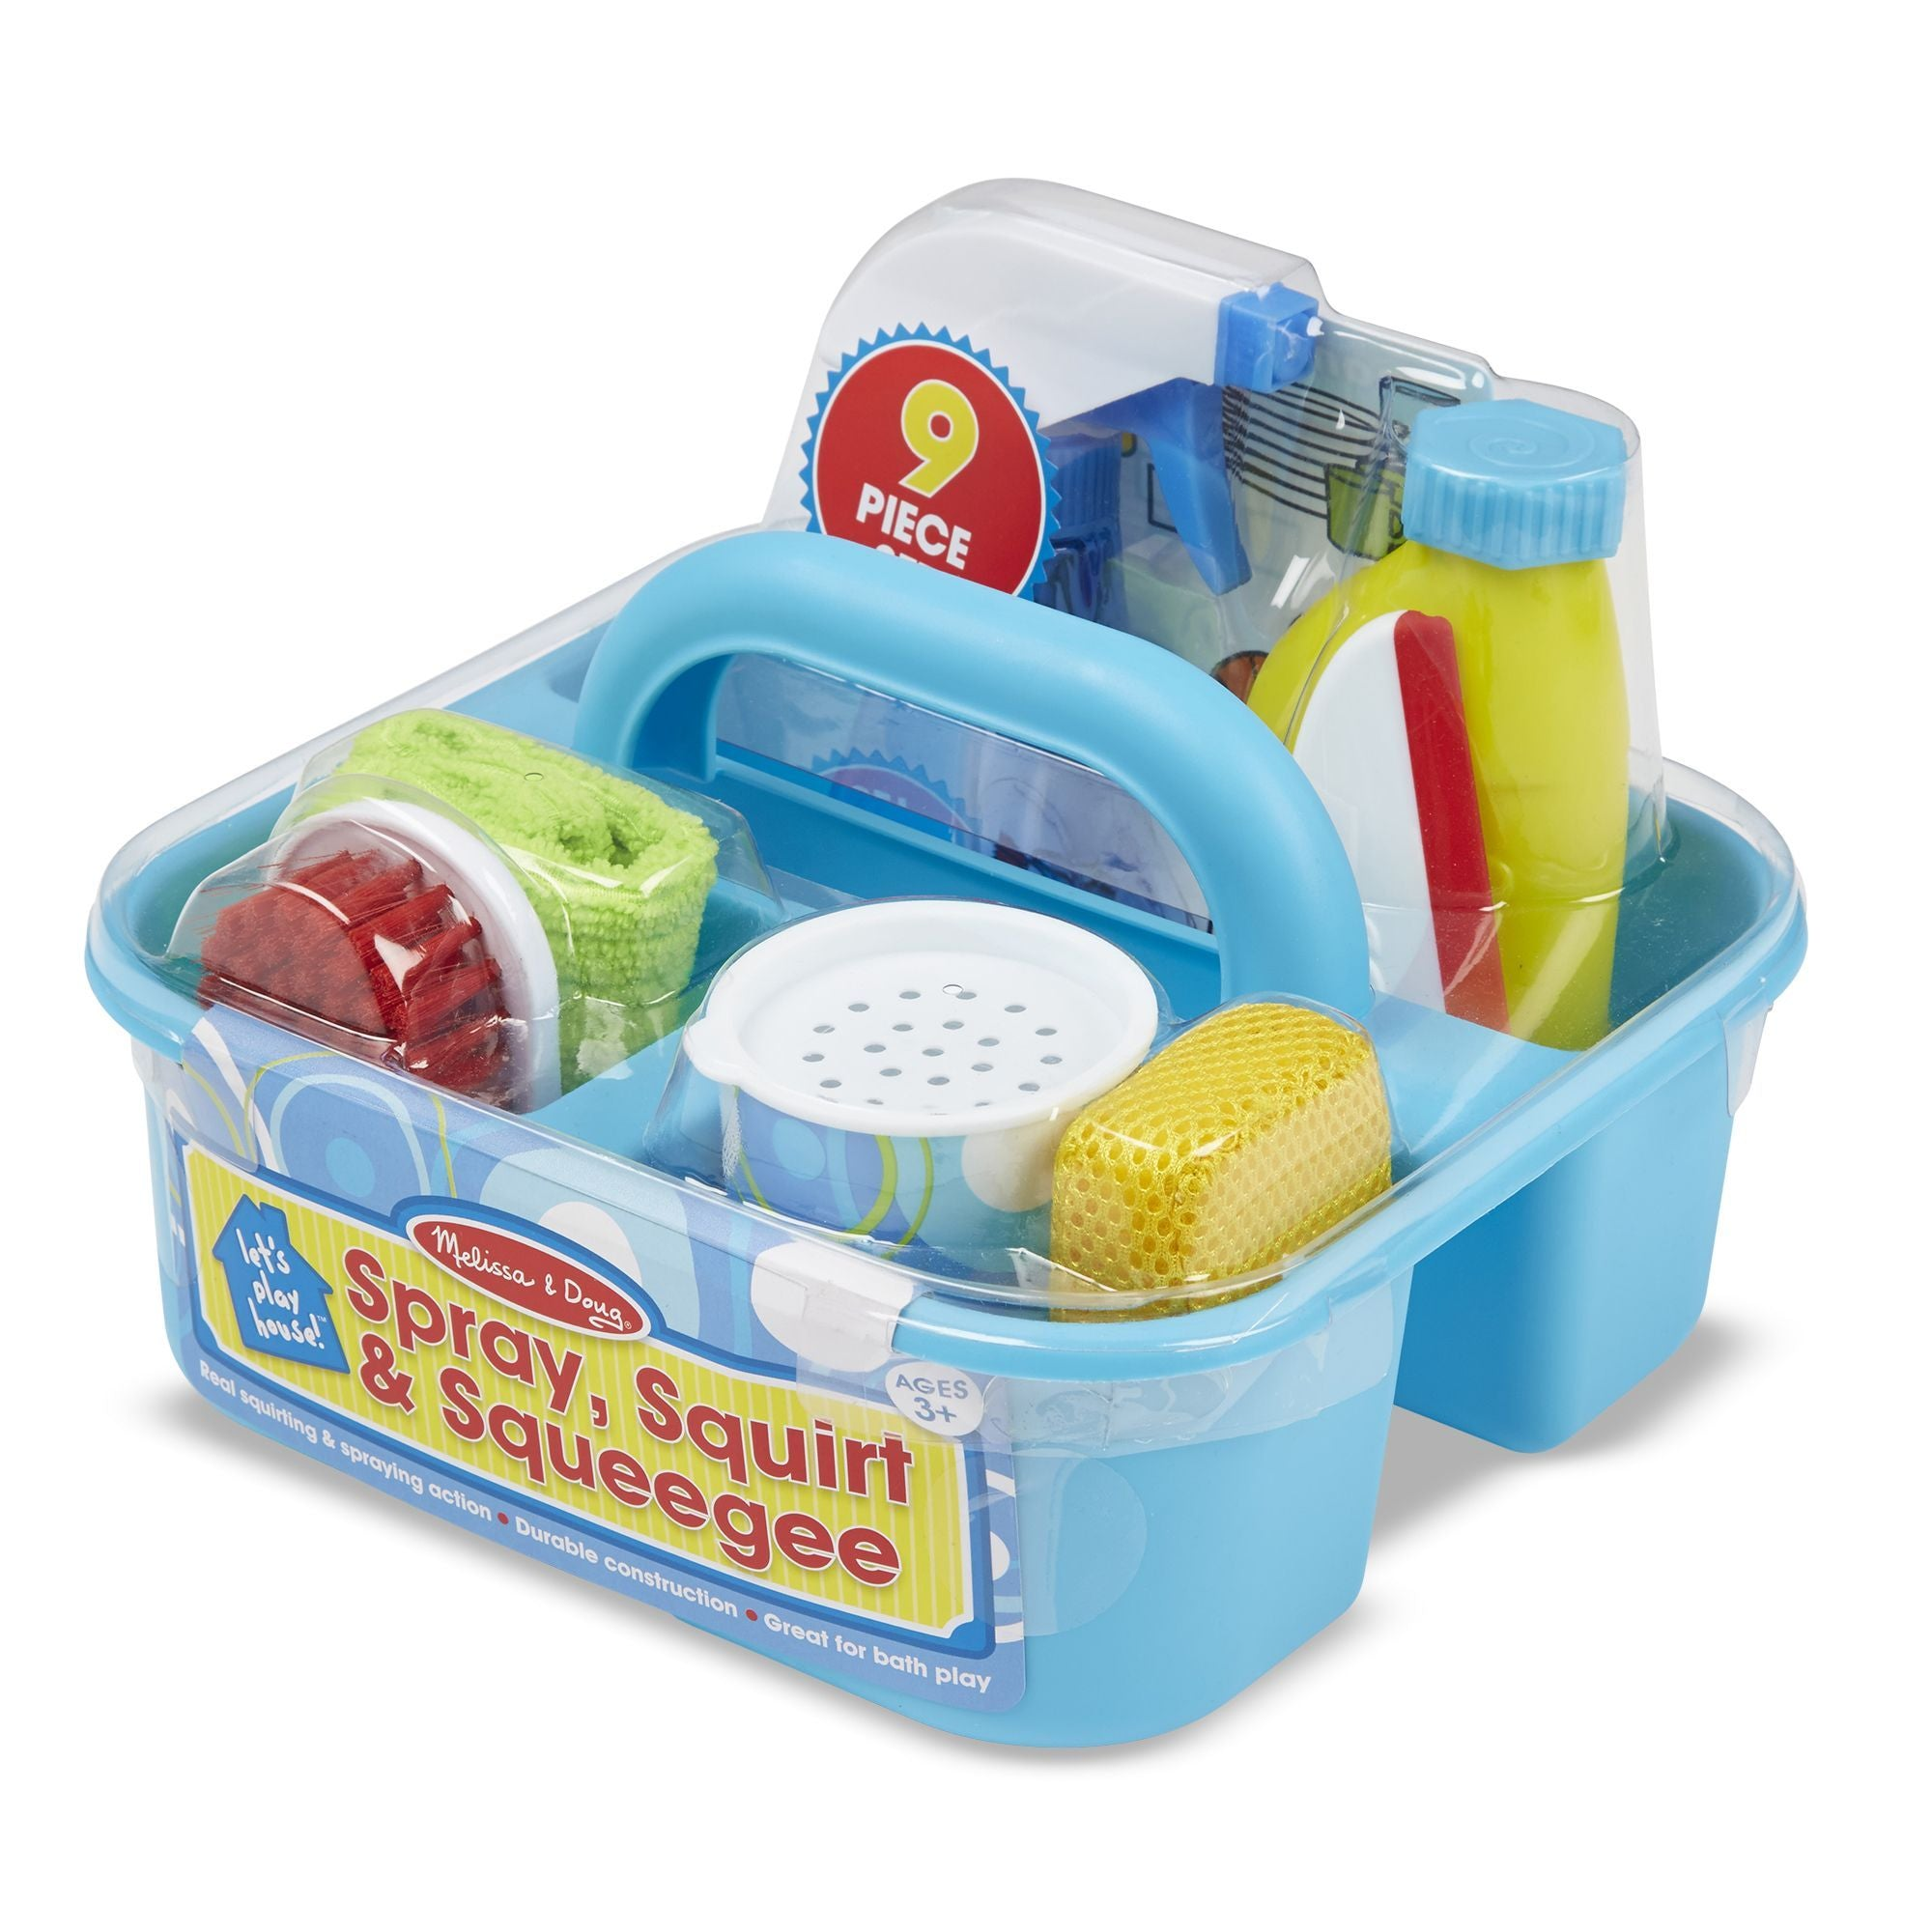 Let's Play House! Spray, Squirt & Squeegee Play Set